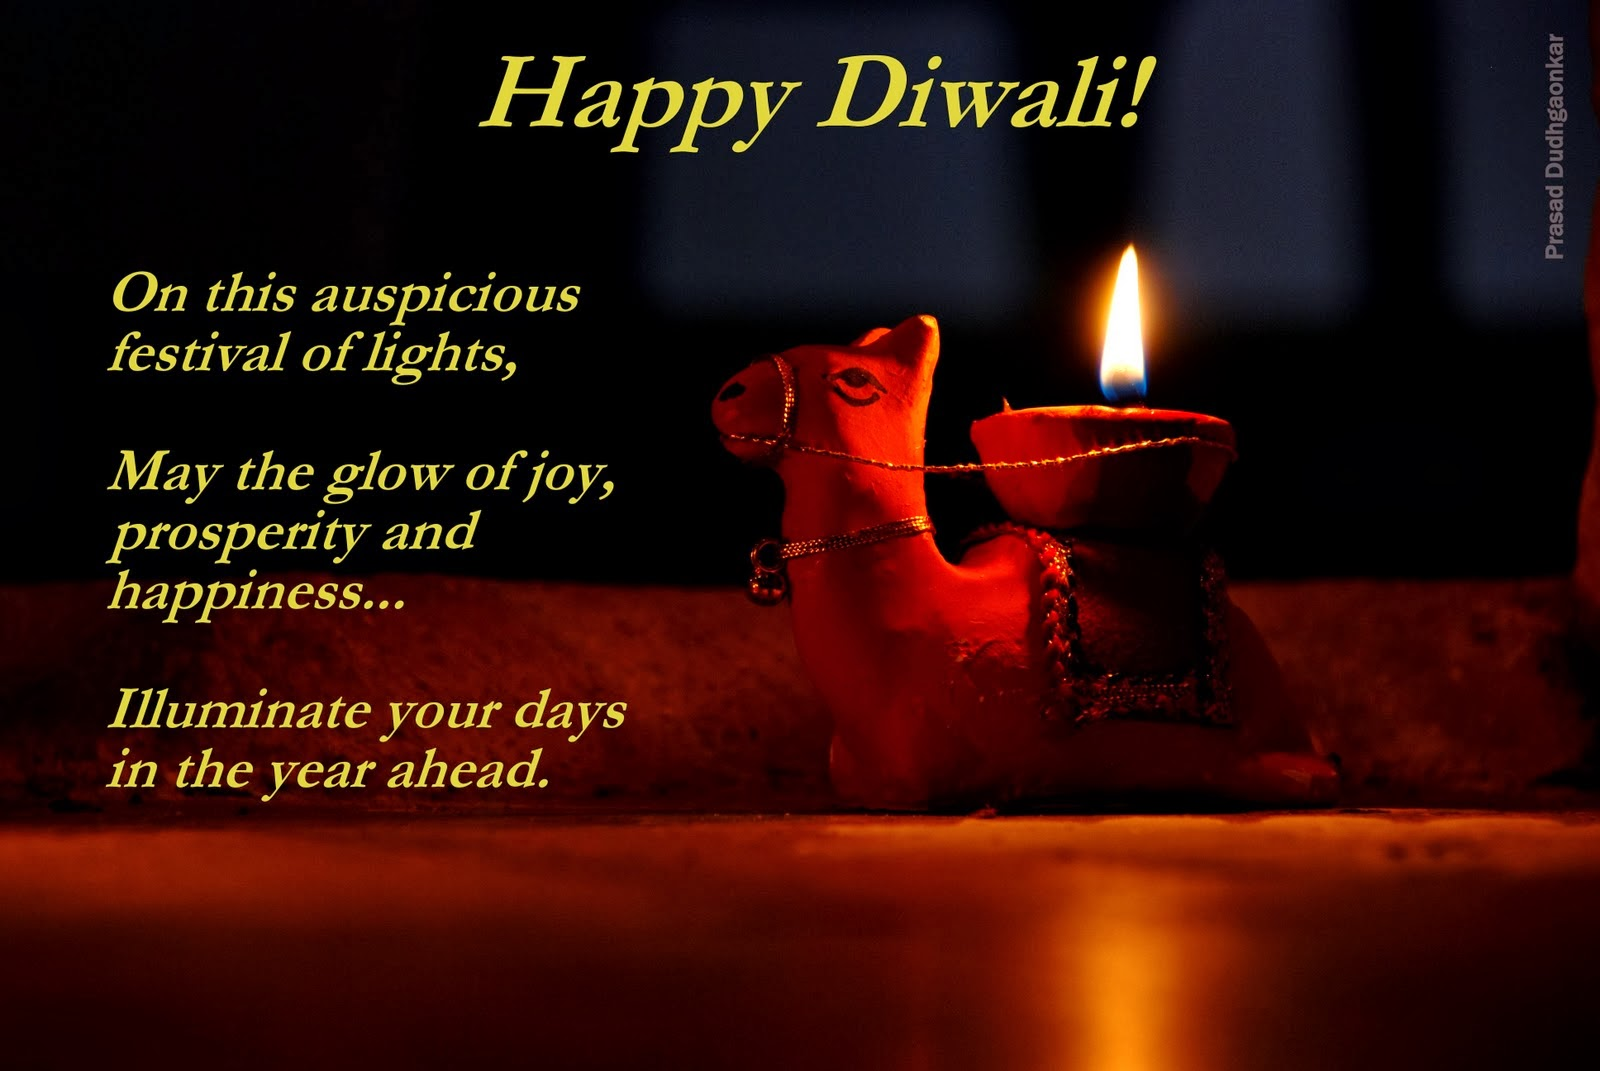 Happy diwali wishes greetings wallpapers m4hsunfo